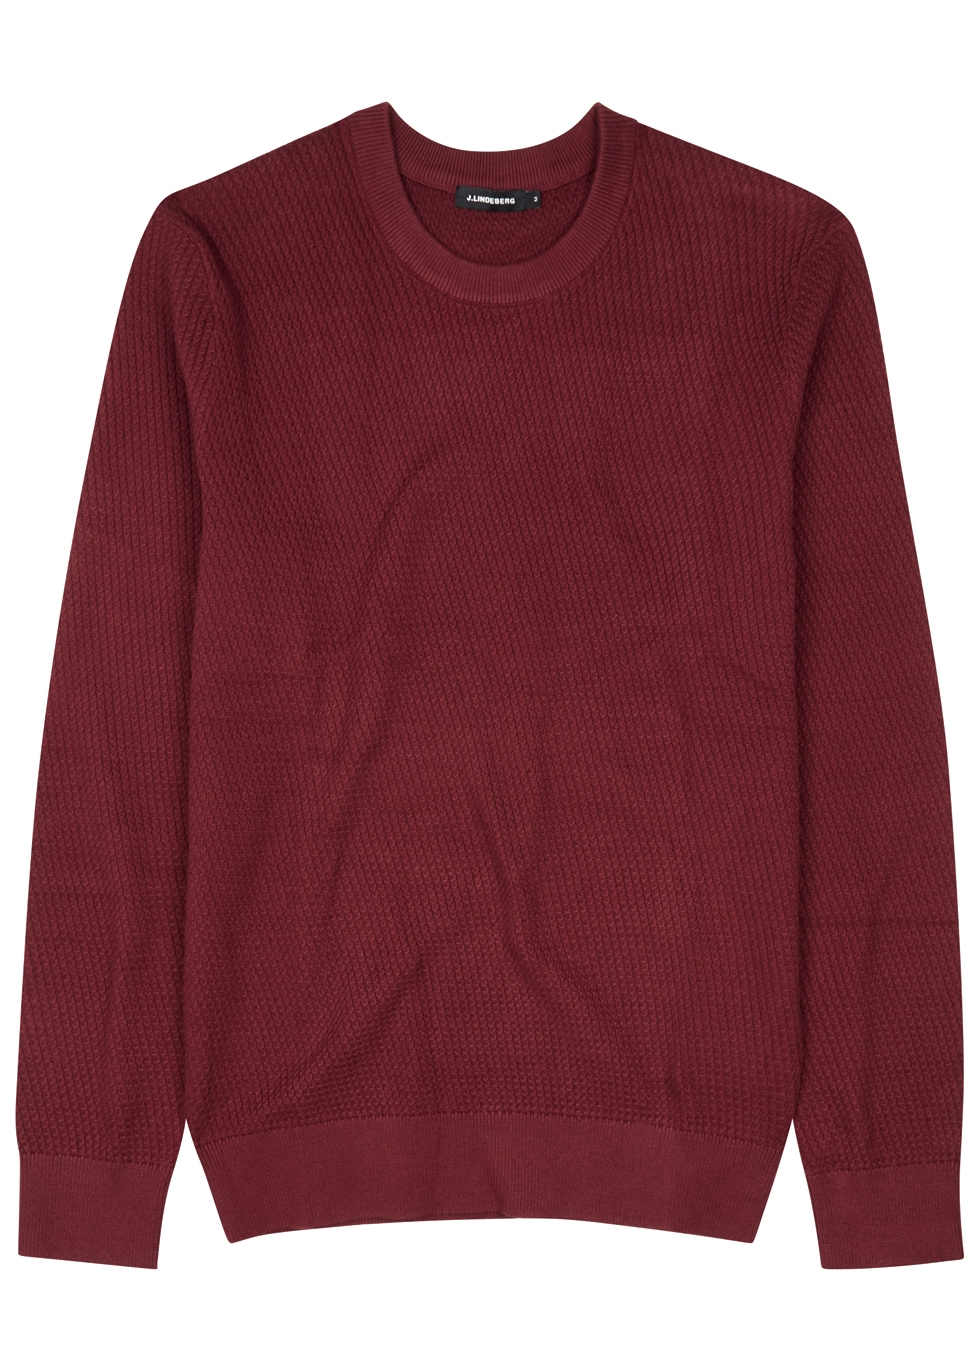 J.LINDEBERG CHESTER WAFFLE-KNIT COTTON JUMPER